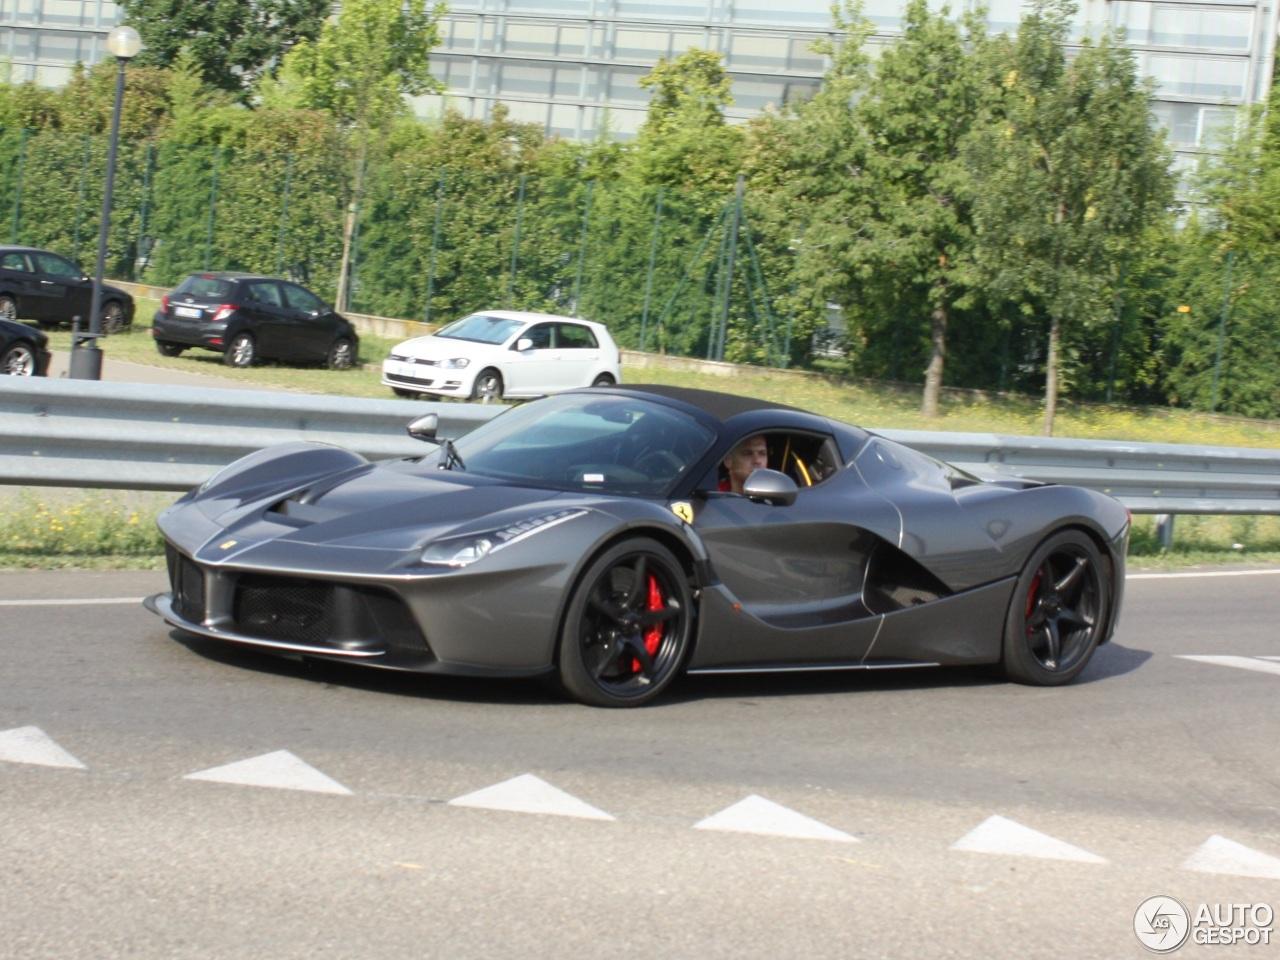 Mclaren Price 2017 >> Ferrari LaFerrari Aperta - 11 July 2016 - Autogespot